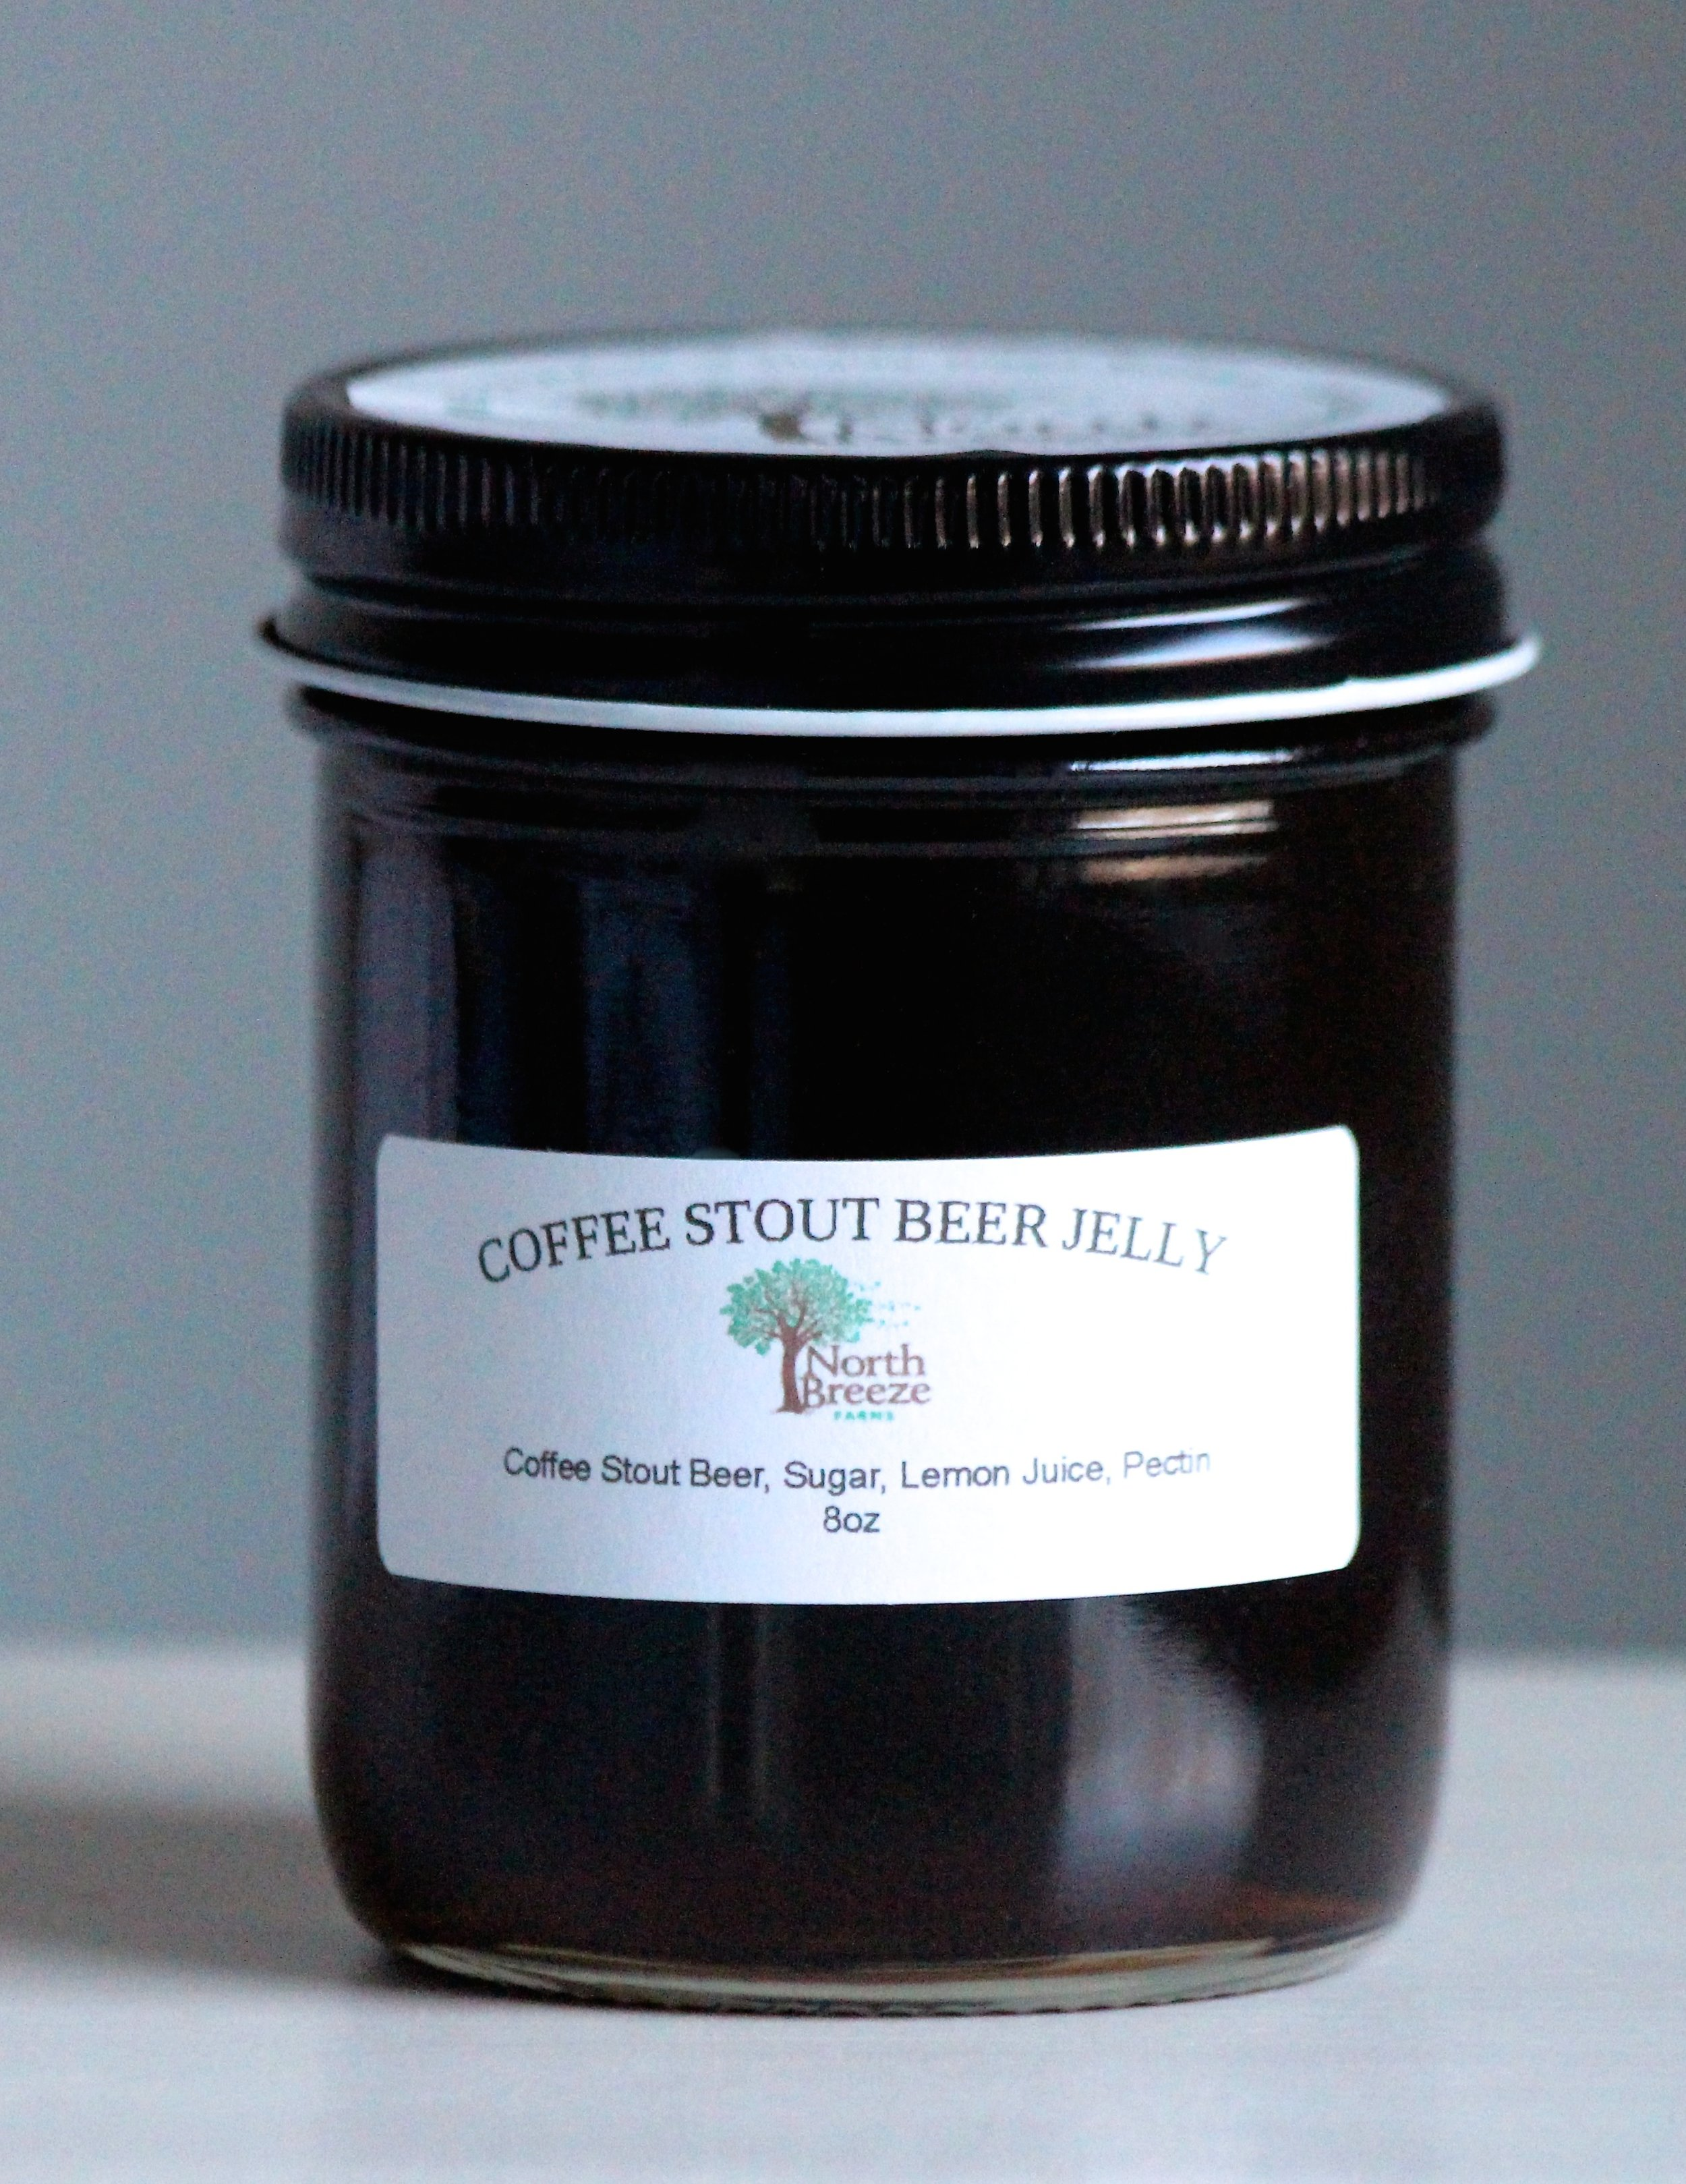 Coffee Stout Beer Jelly $12